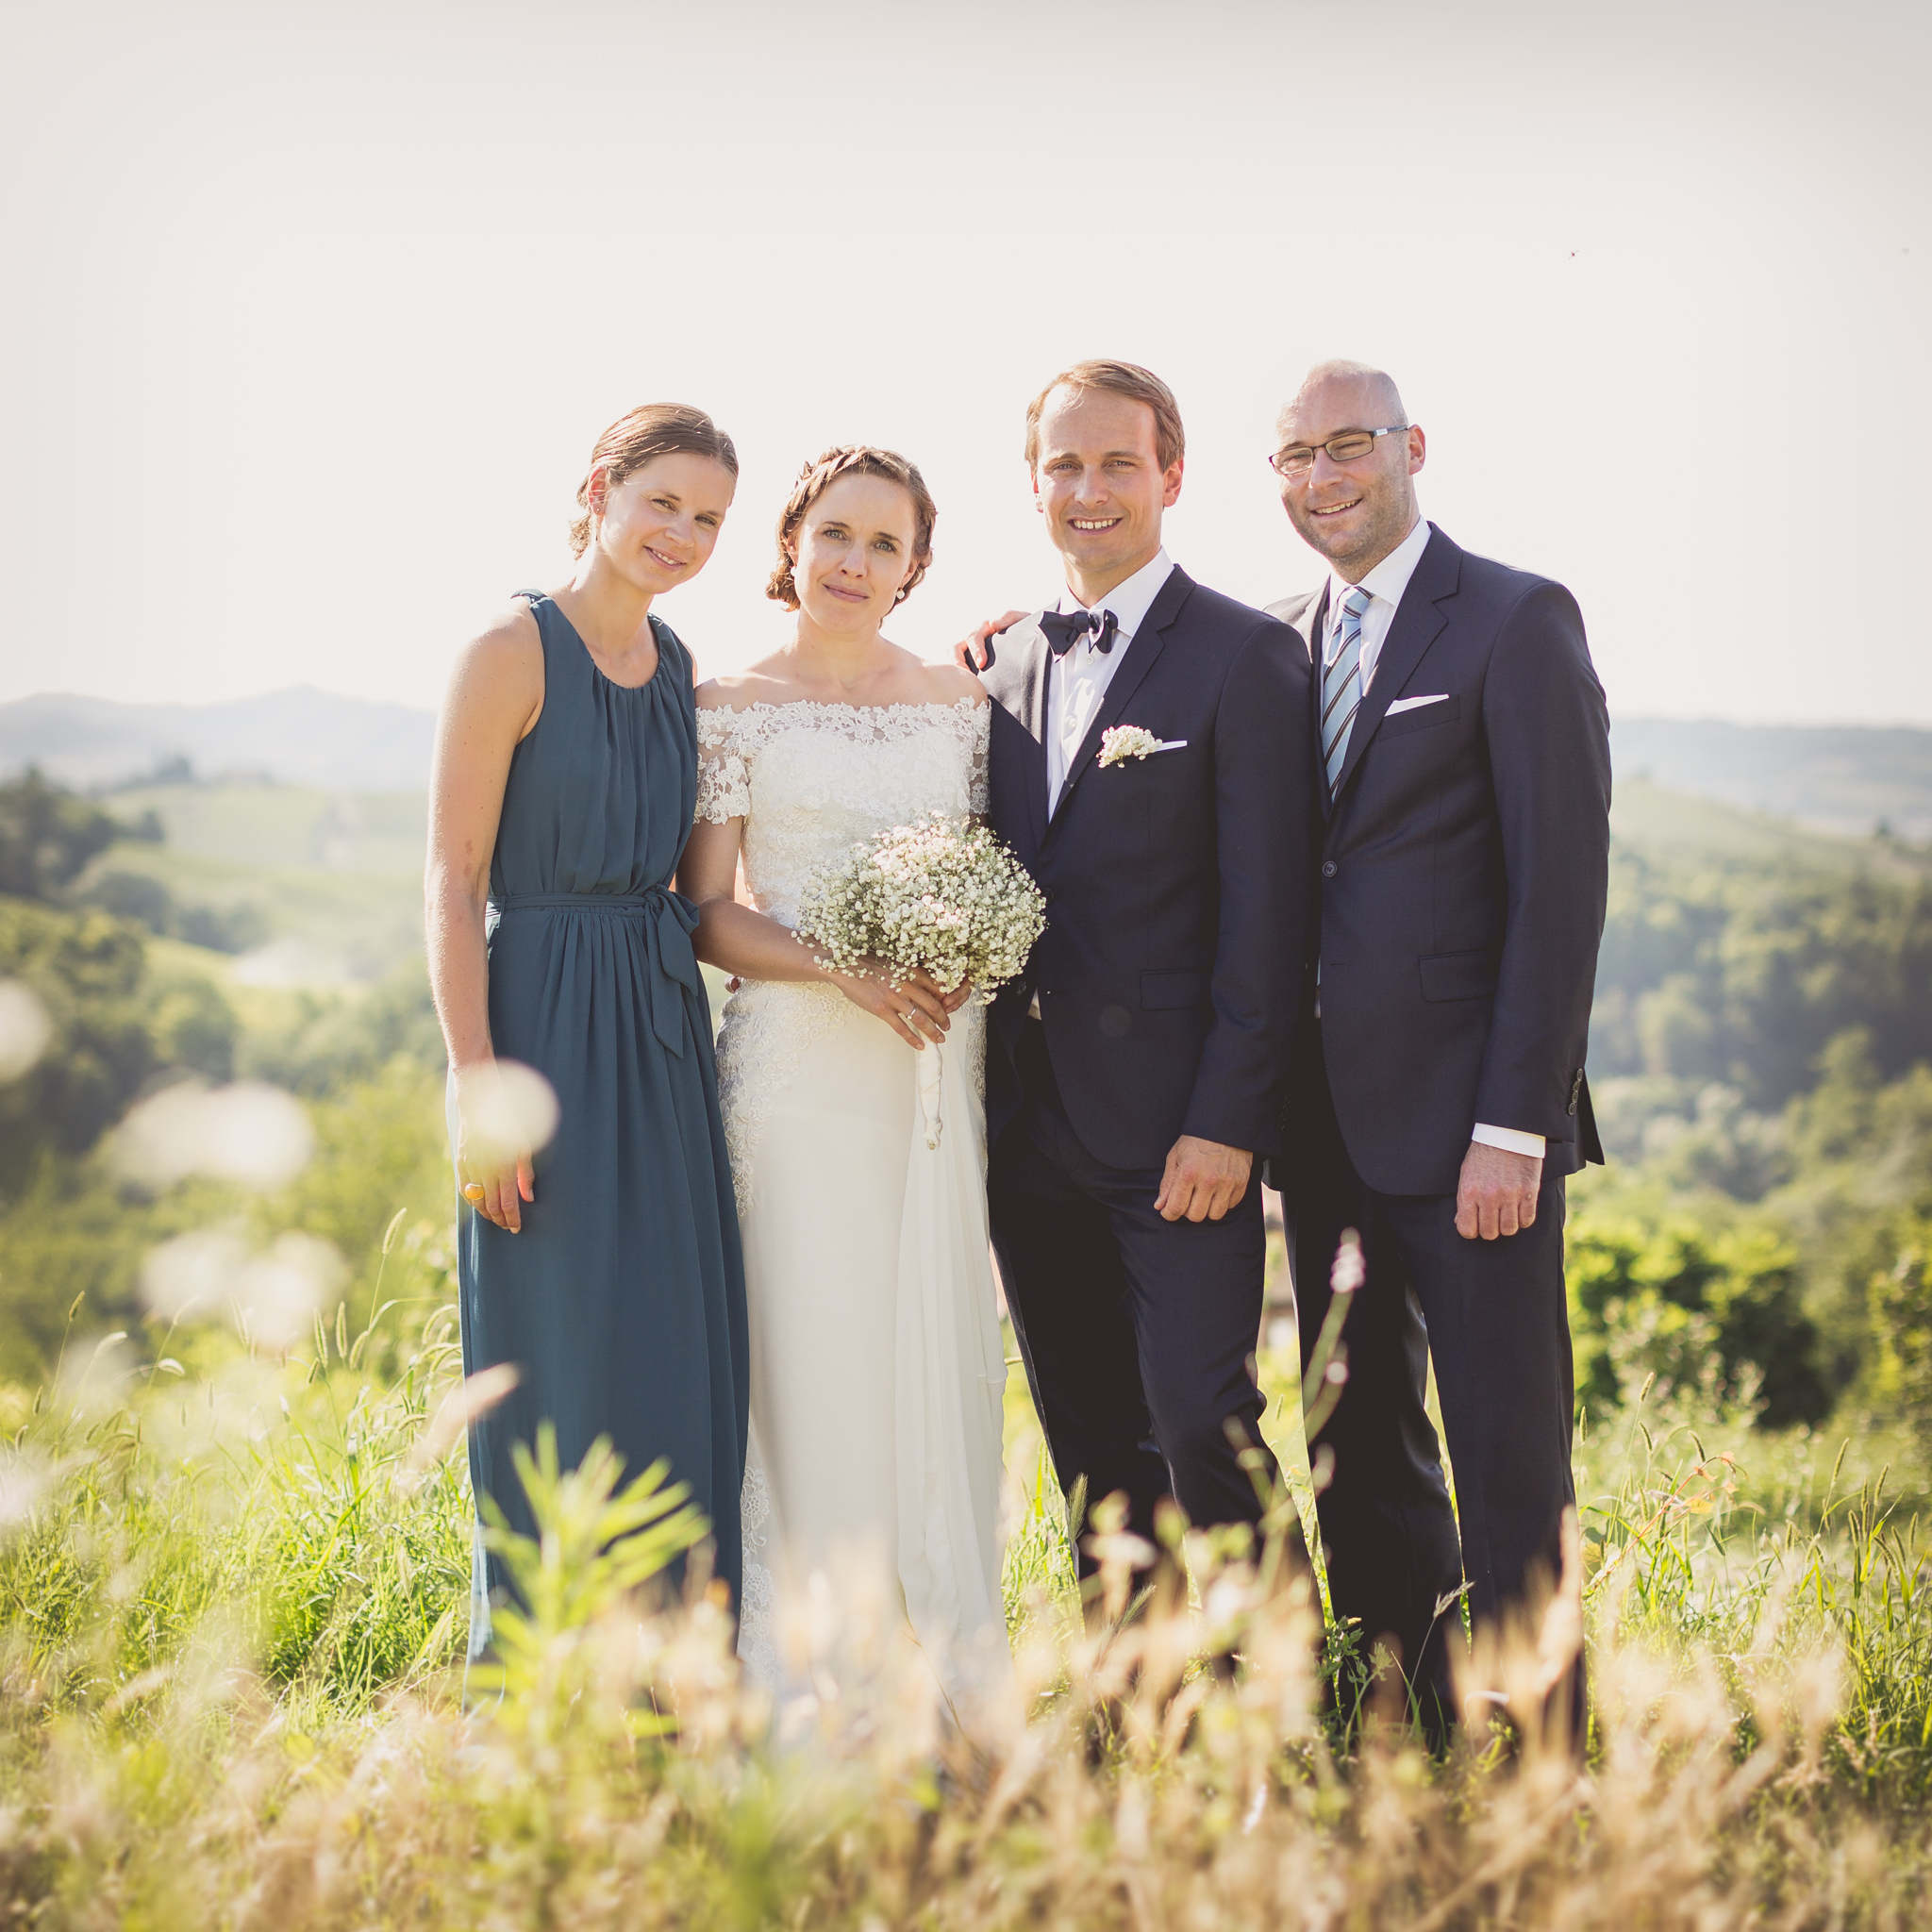 Cathrine+Andreas_Bryllup-125